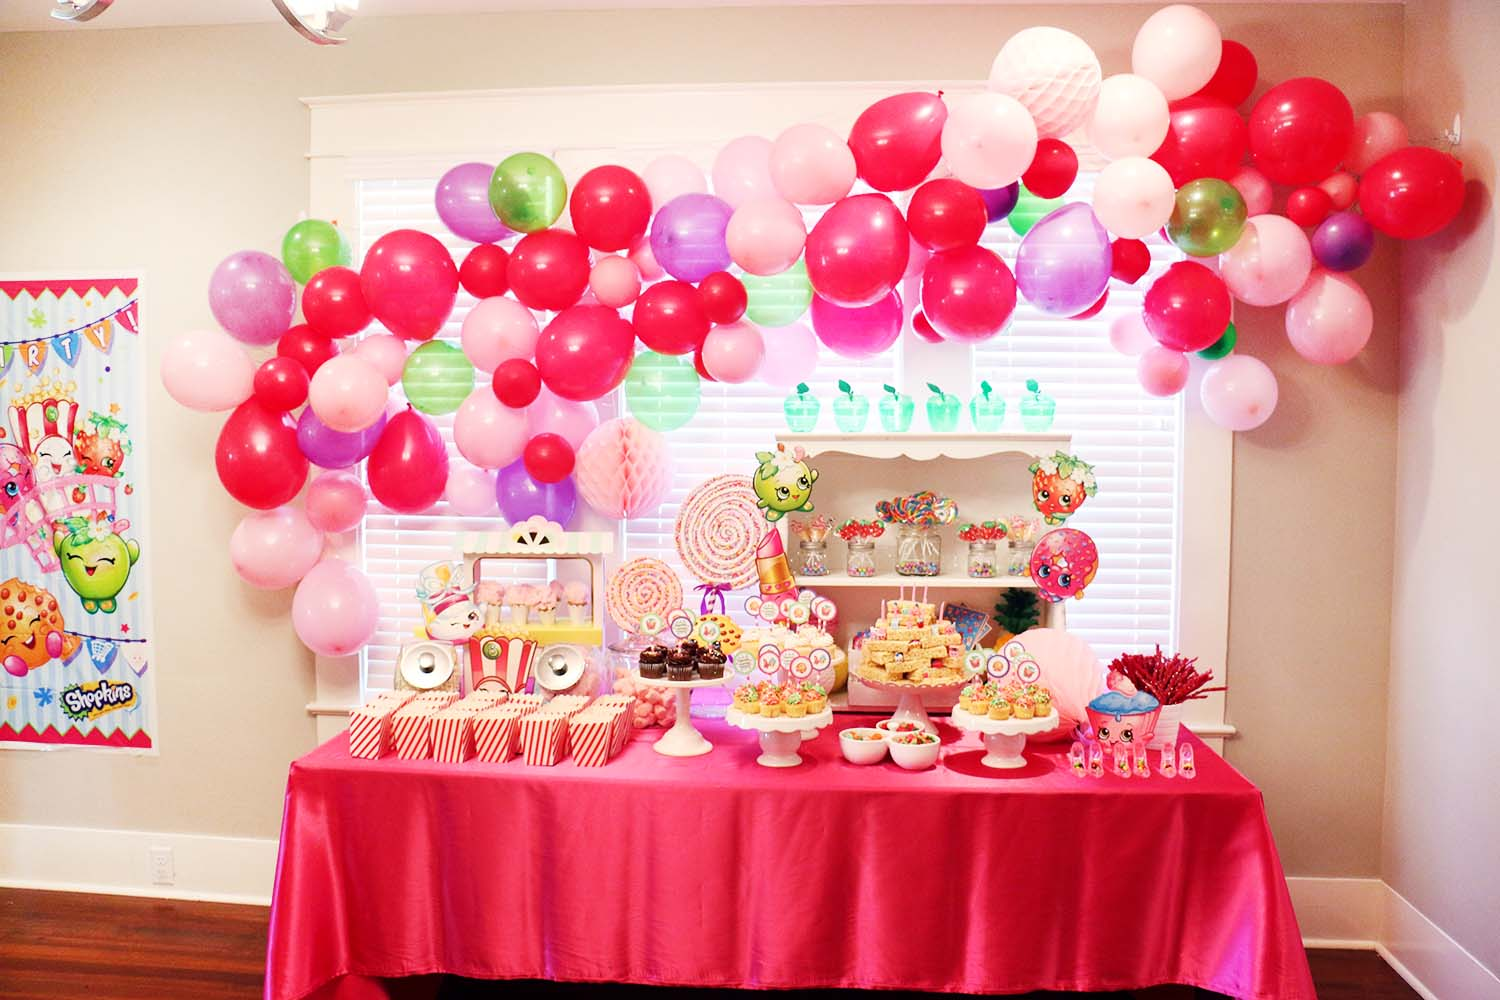 Sophia And Sienna's Shopkins Party!